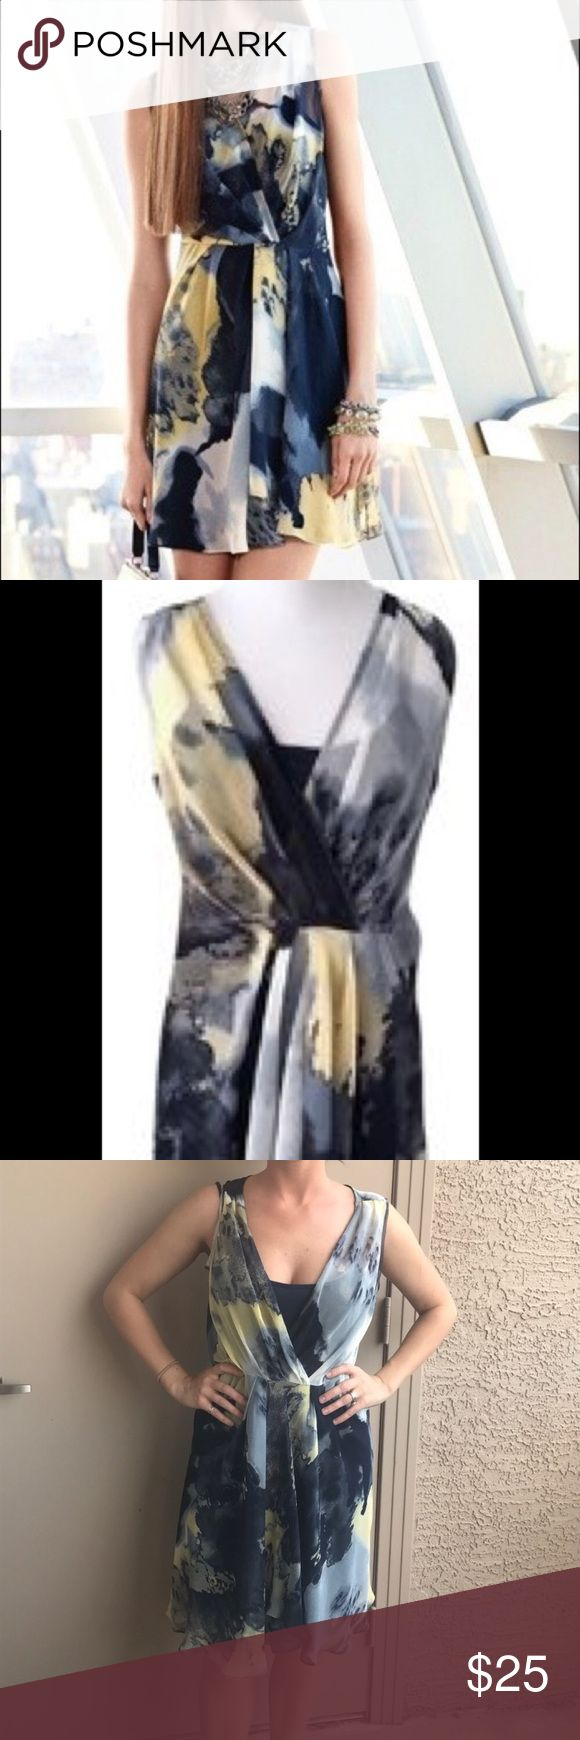 Simply Vera Vera wang dress This dress is in great condition. The only flaw is one under strap is connected and one is not. It is not noticeable when wearing. It is 100 percent polyester. Simply Vera Vera Wang Dresses